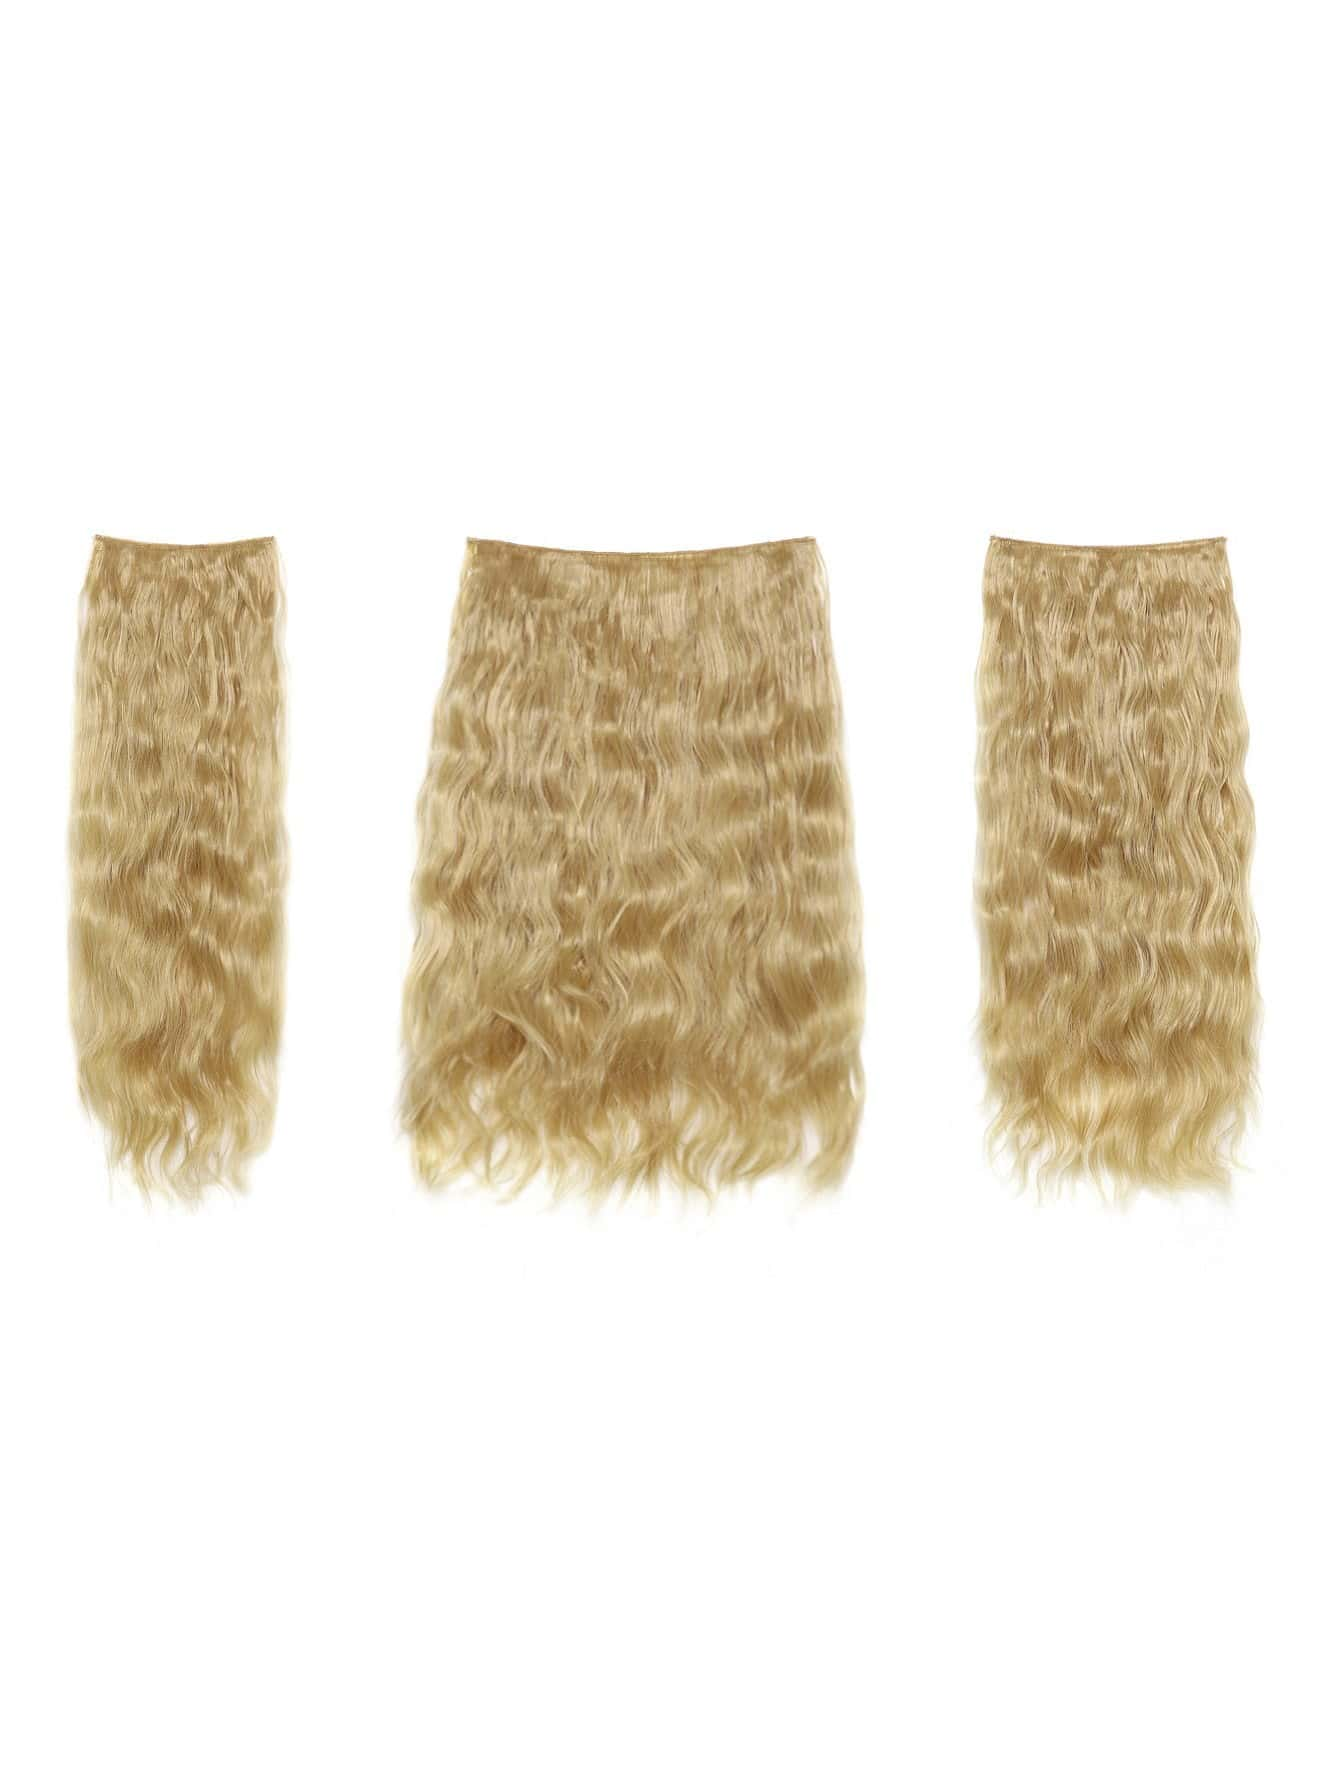 цена на Light Golden Blonde Clip In Curly Hair Extension 3pcs